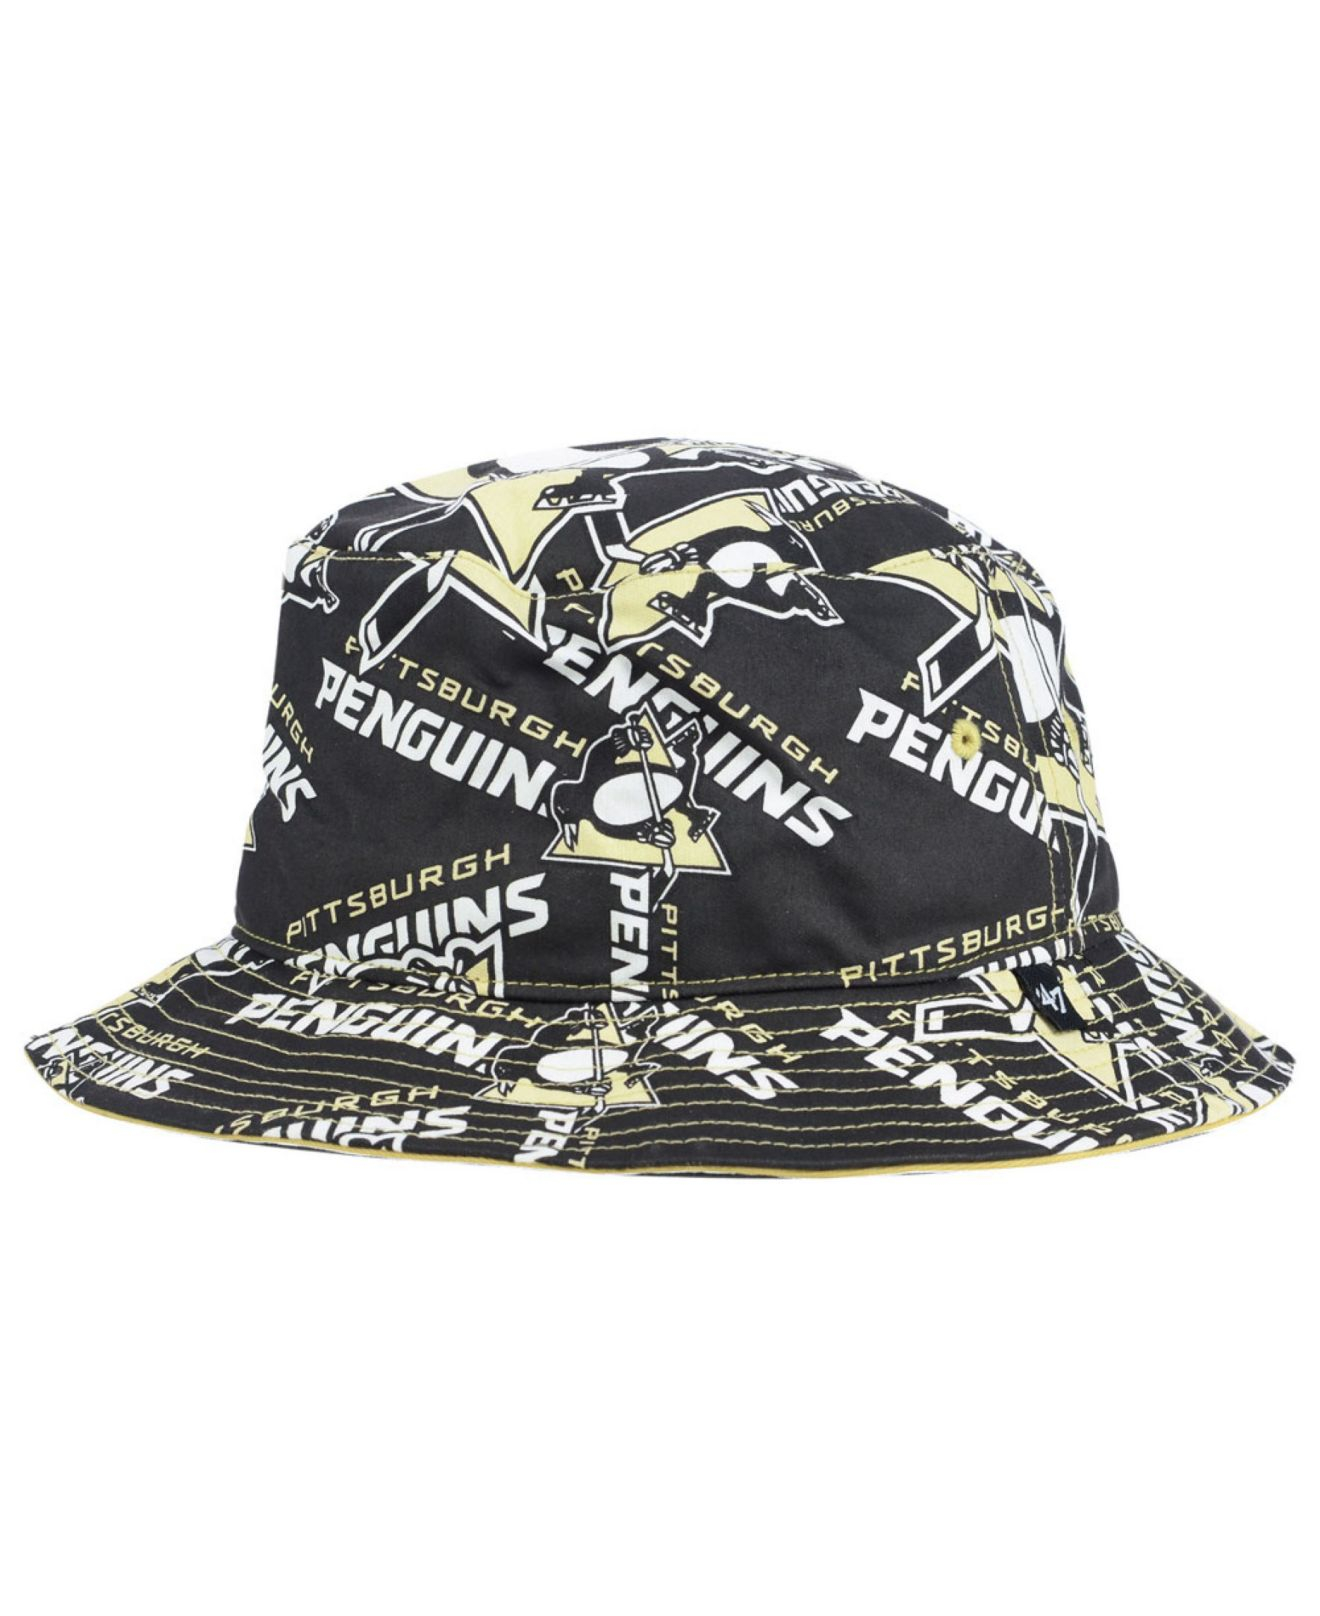 ... cheapest lyst 47 brand pittsburgh penguins bucket hat in black 15418  305cc fd4d0b8c8